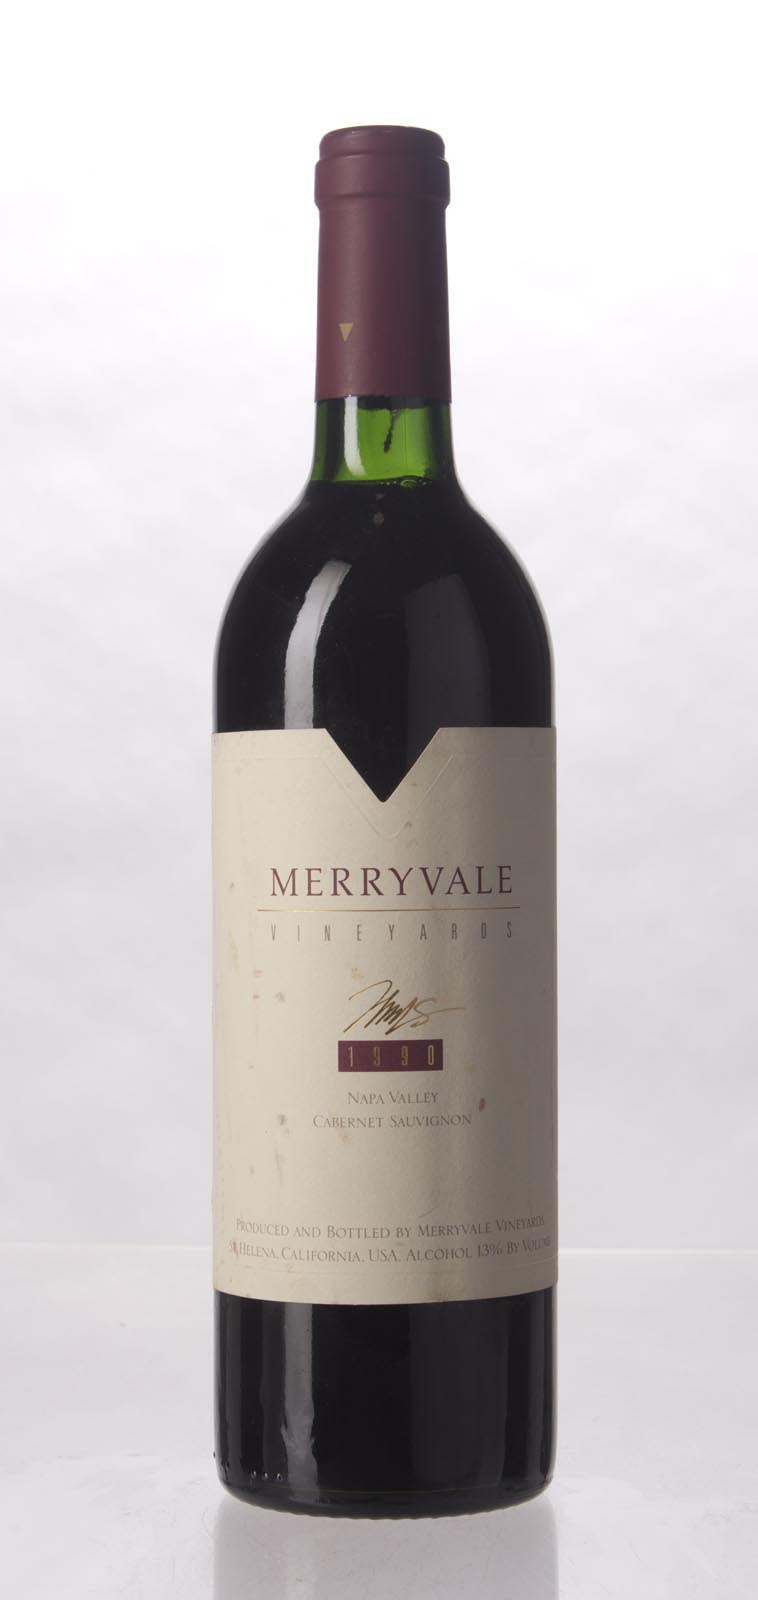 Merryvale Vineyards Cabernet Sauvignon Napa Valley 1990, 750mL () from The BPW - Merchants of rare and fine wines.